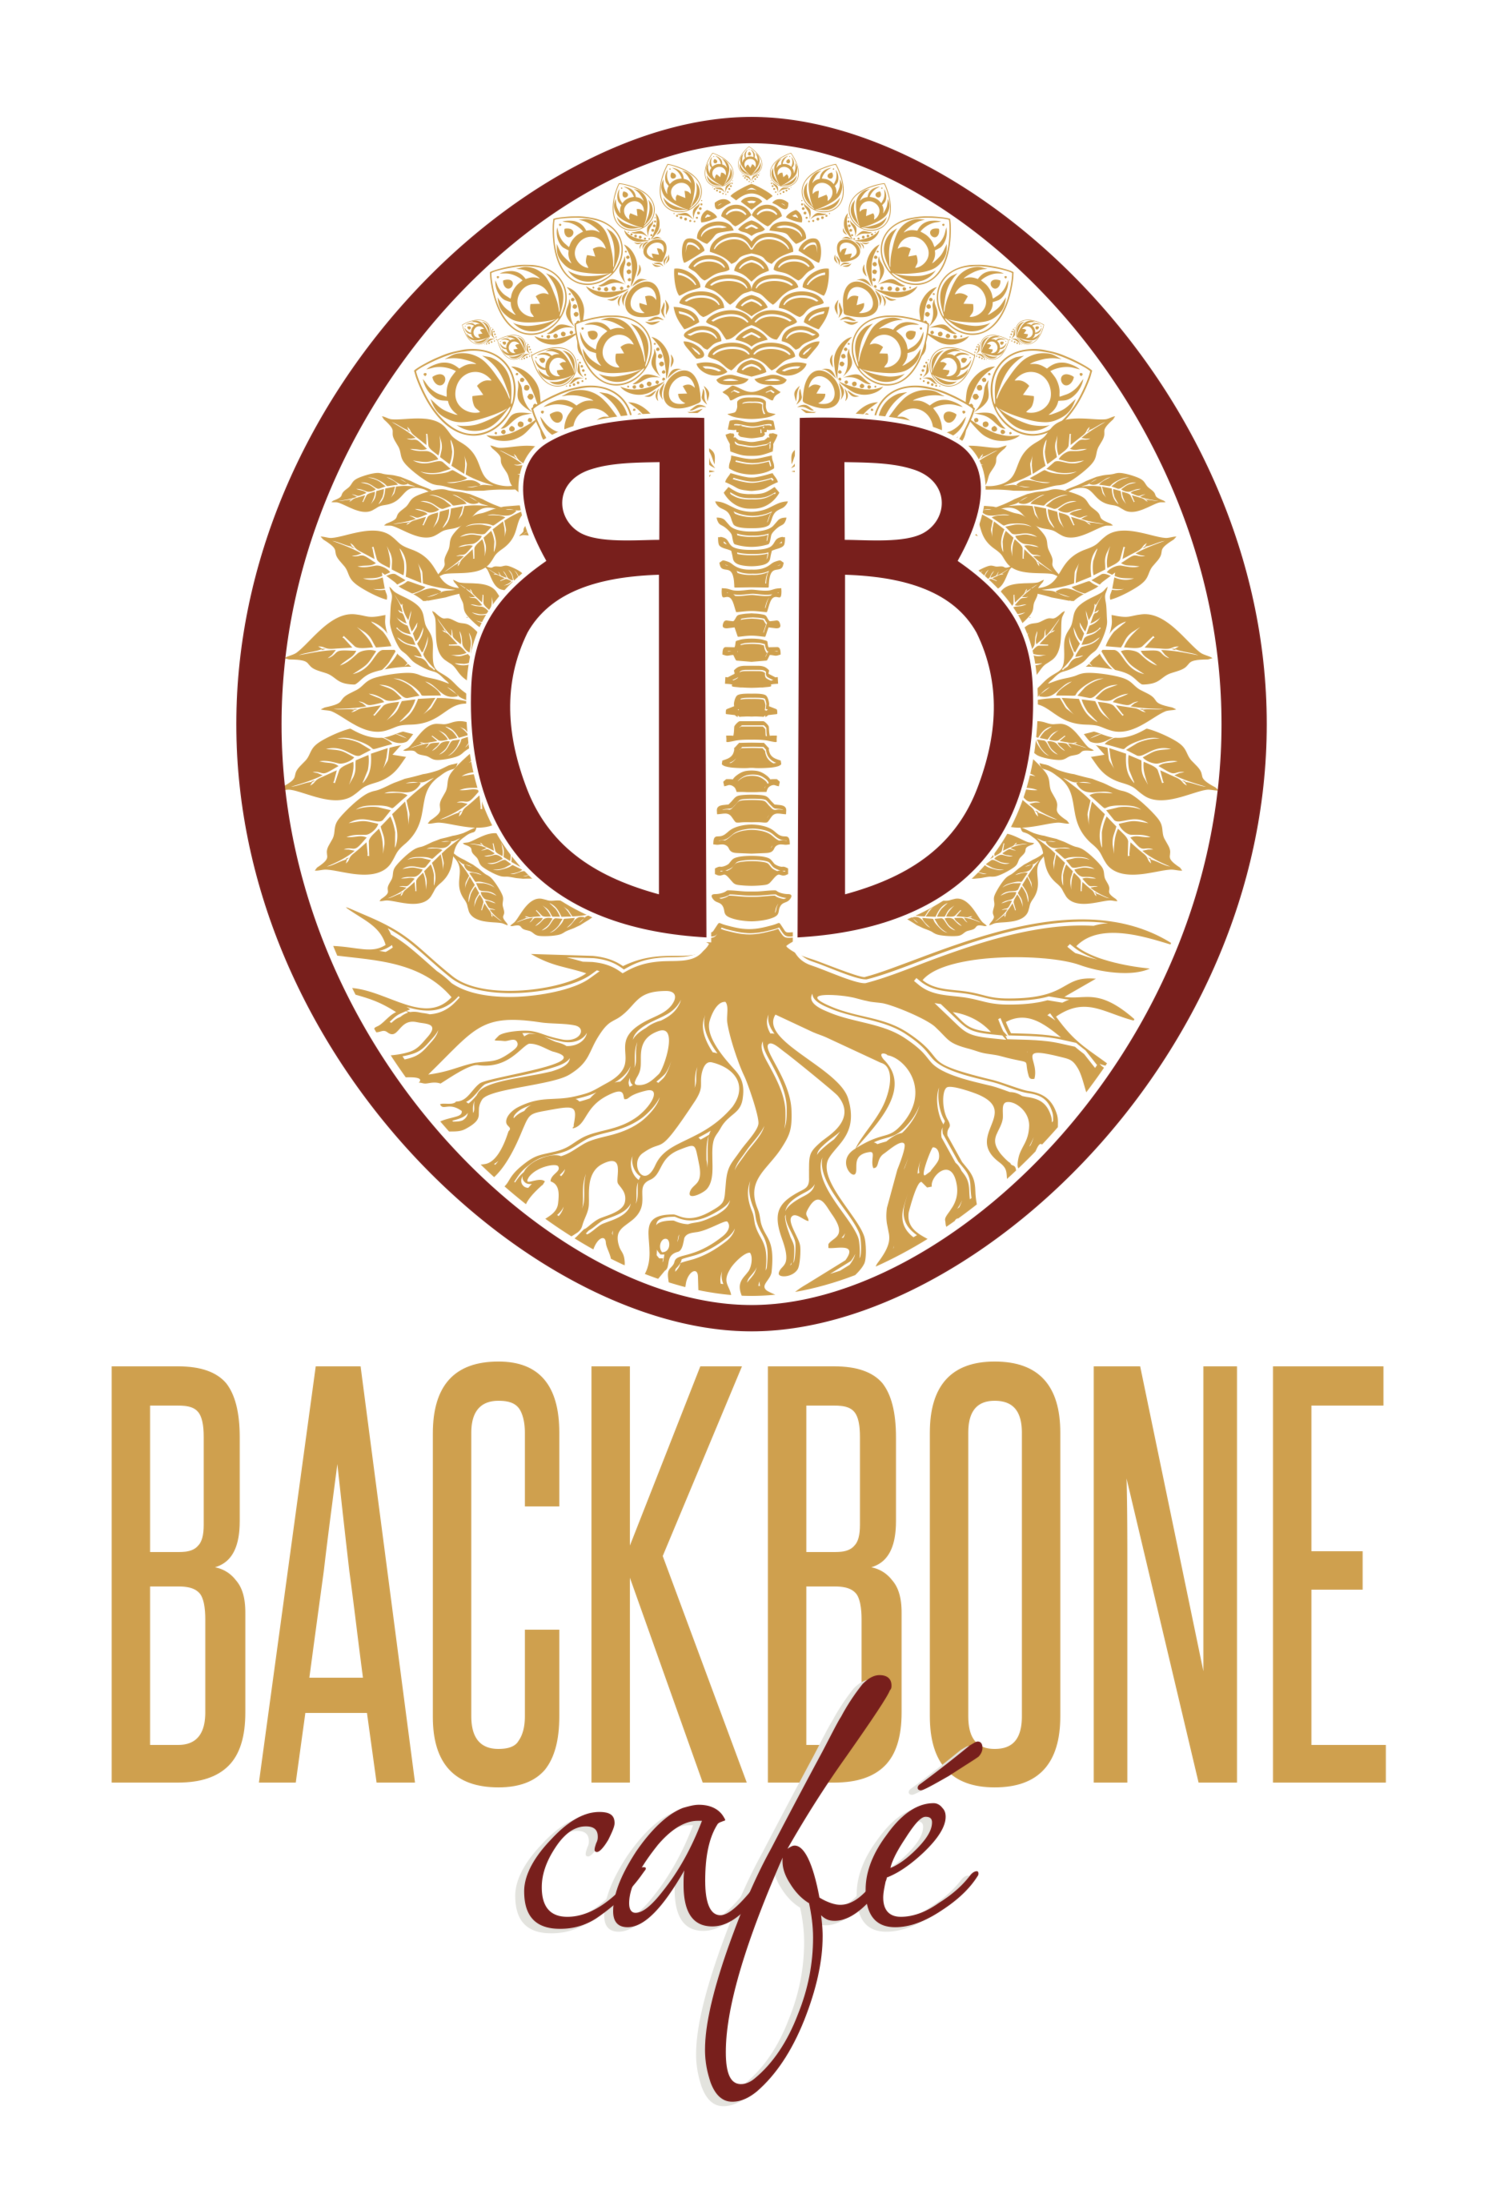 Backbone Cafe